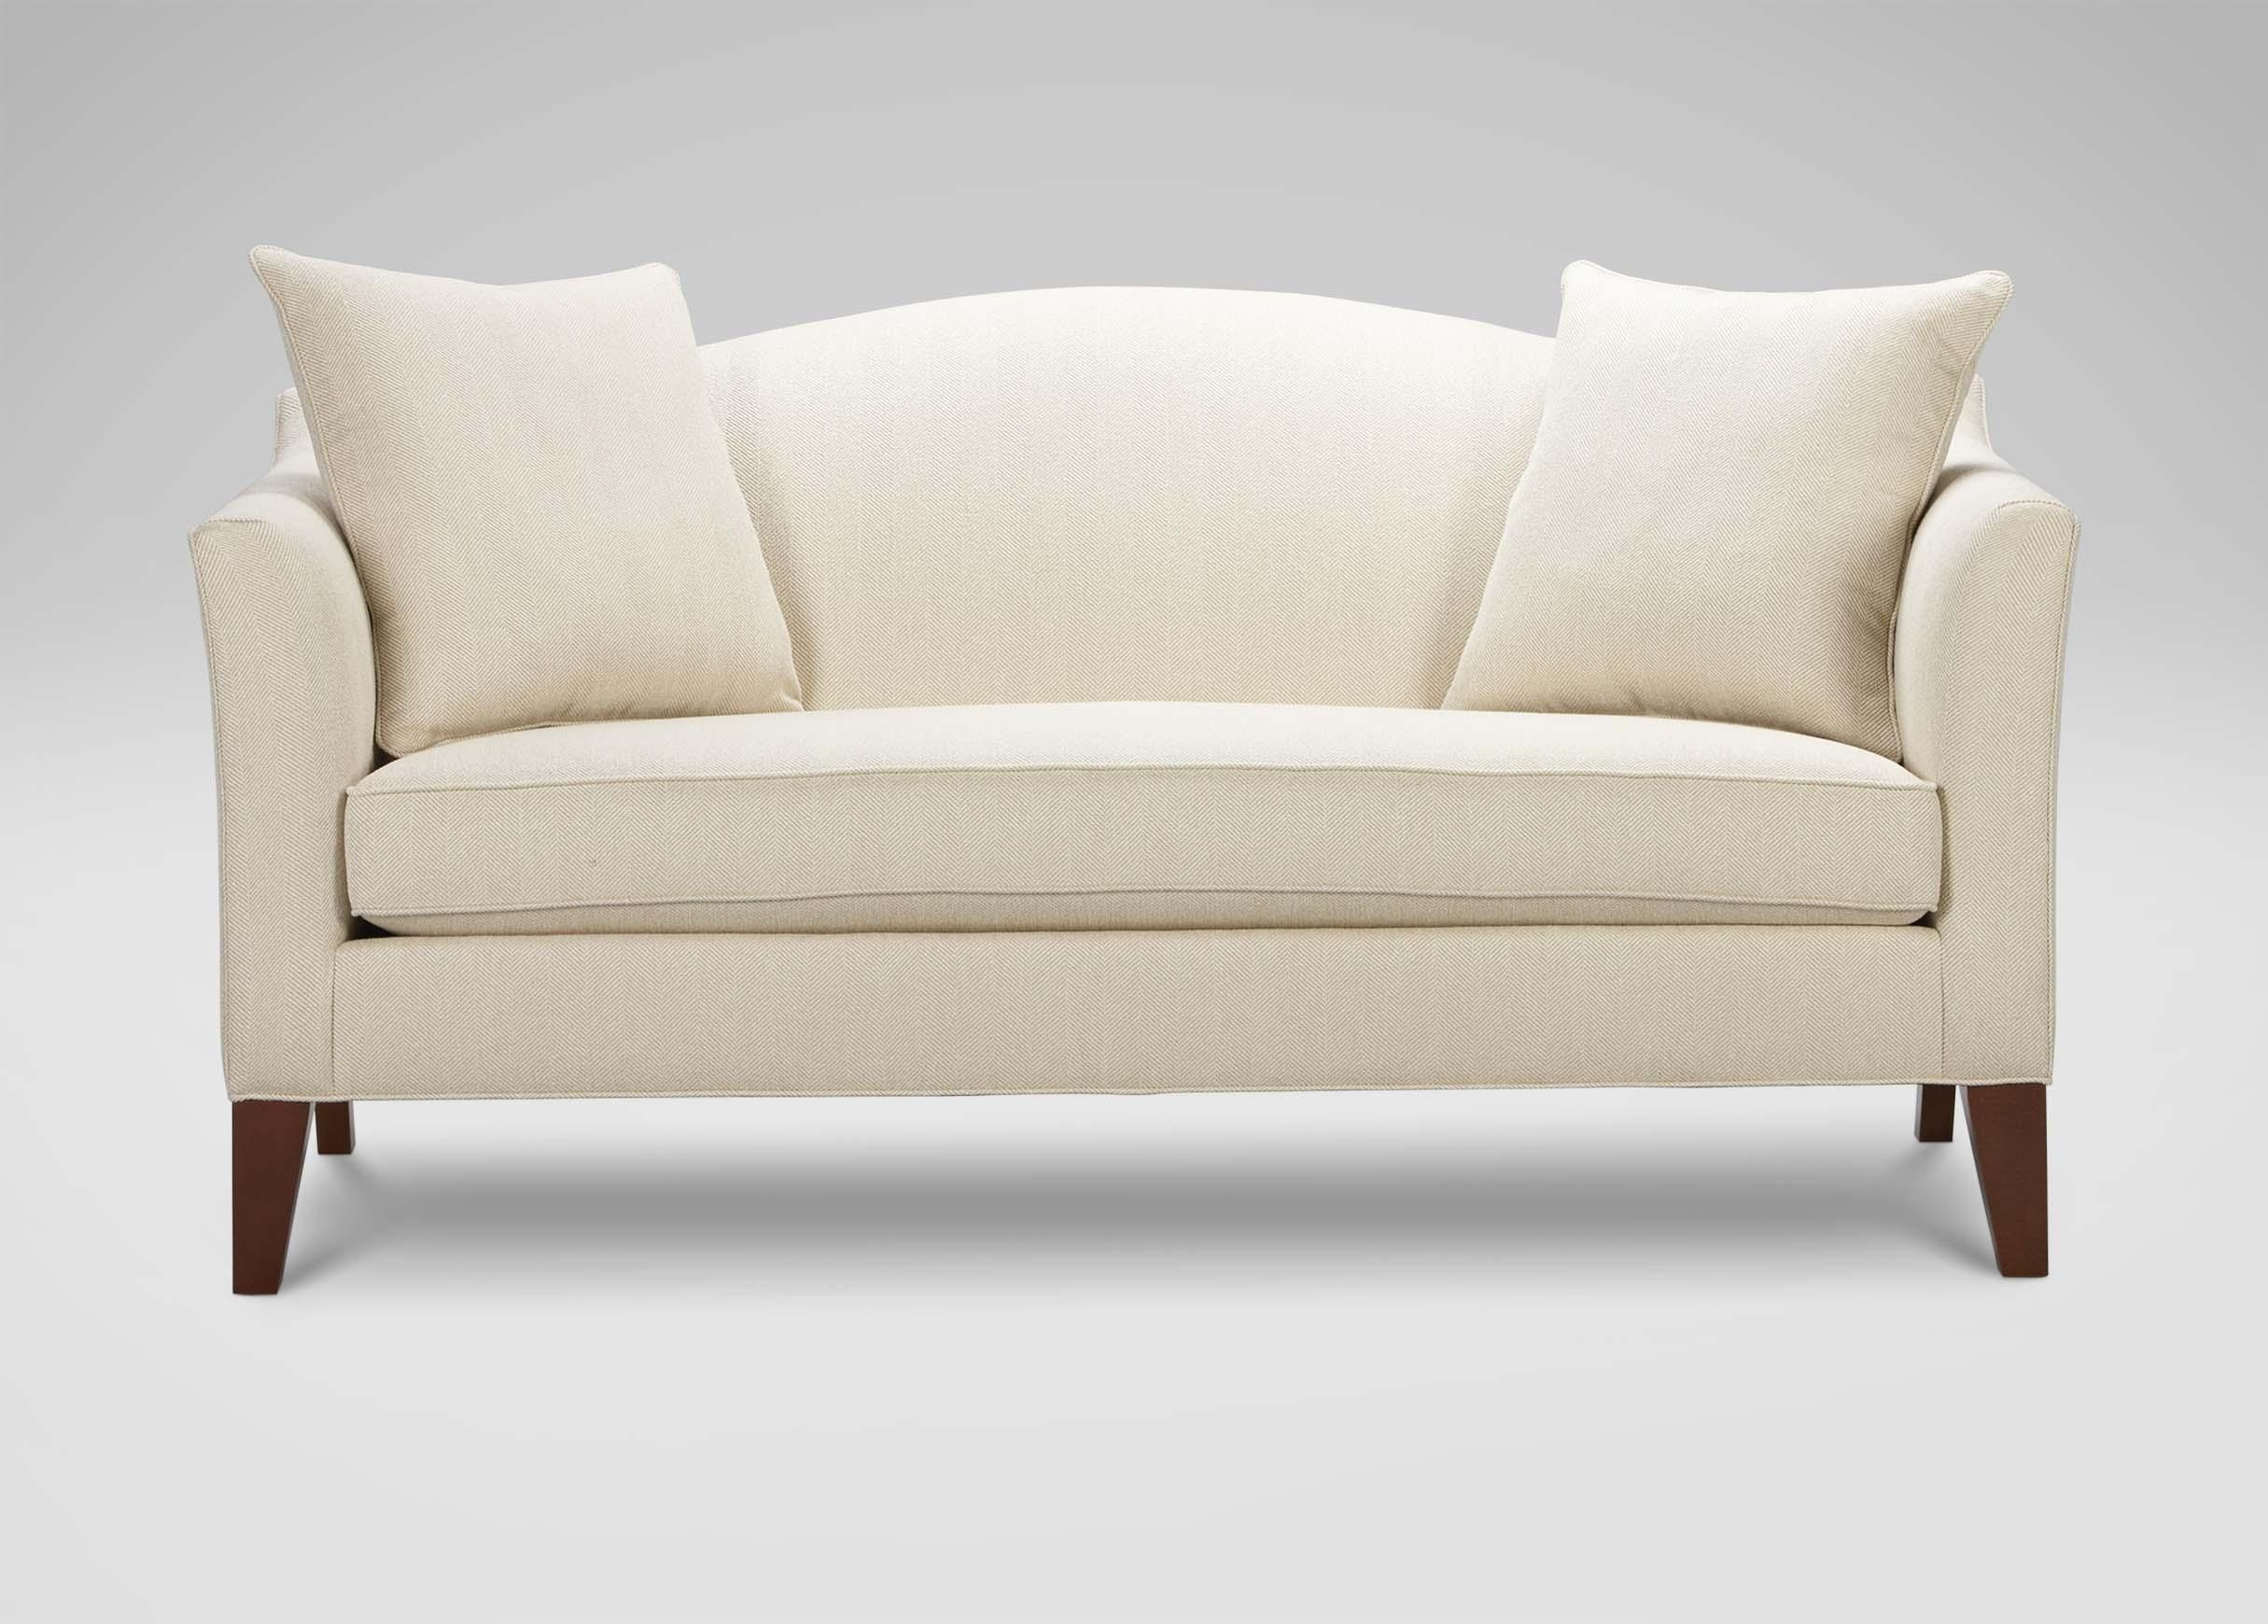 chadwick sofa ethan allen reviews leather australia 20 best collection of sofas and chairs | ...